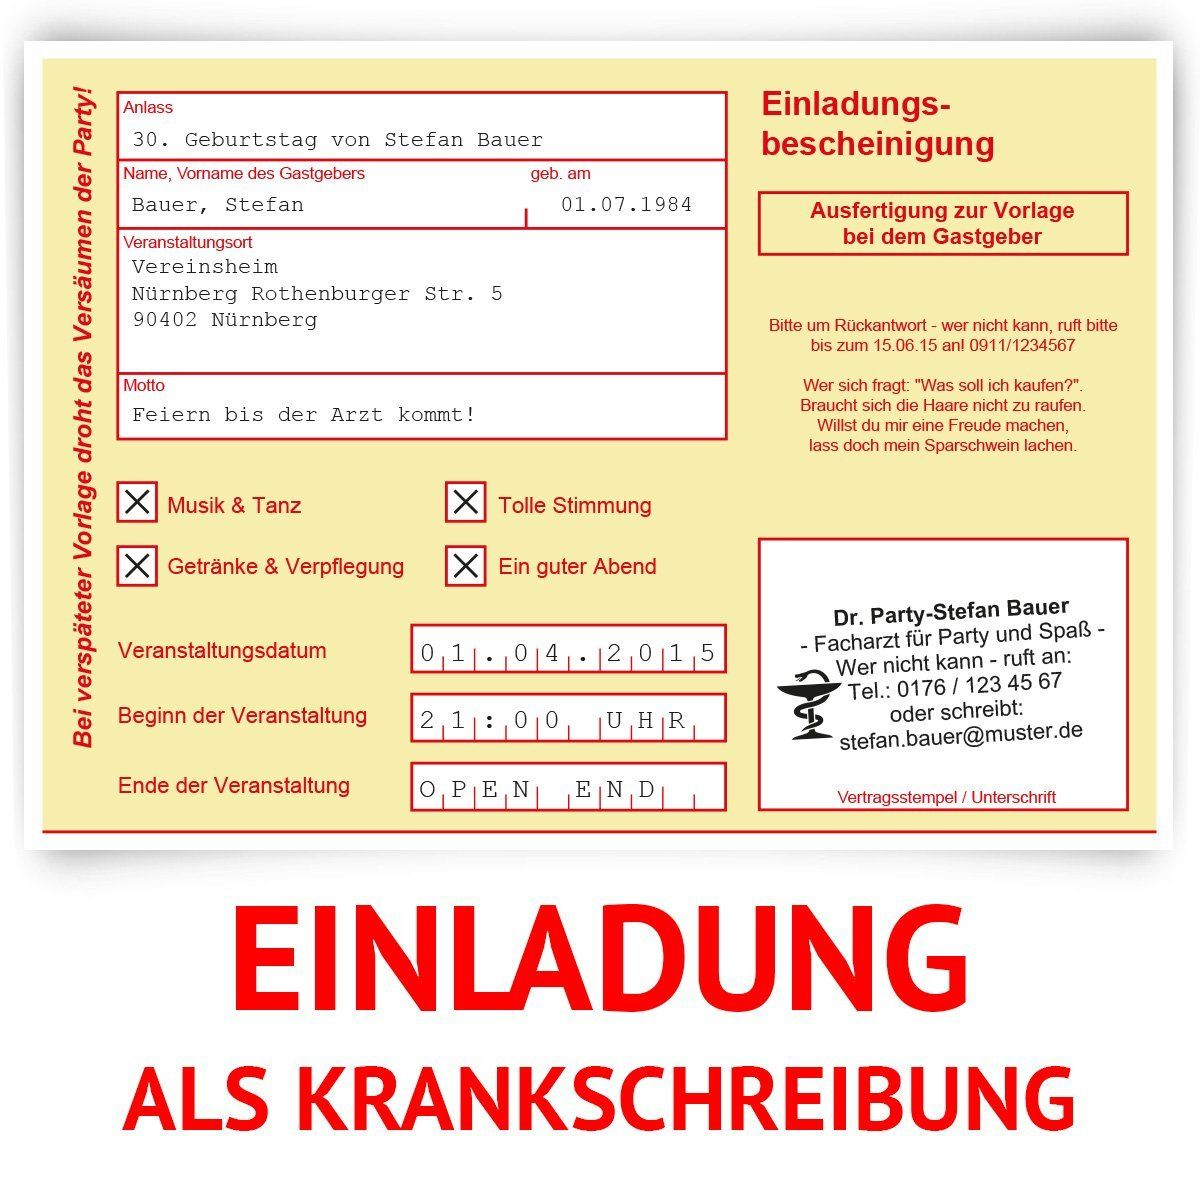 http://www.amazon.de/gp/product/b00hodkzbu?keywords=einladungen, Einladung